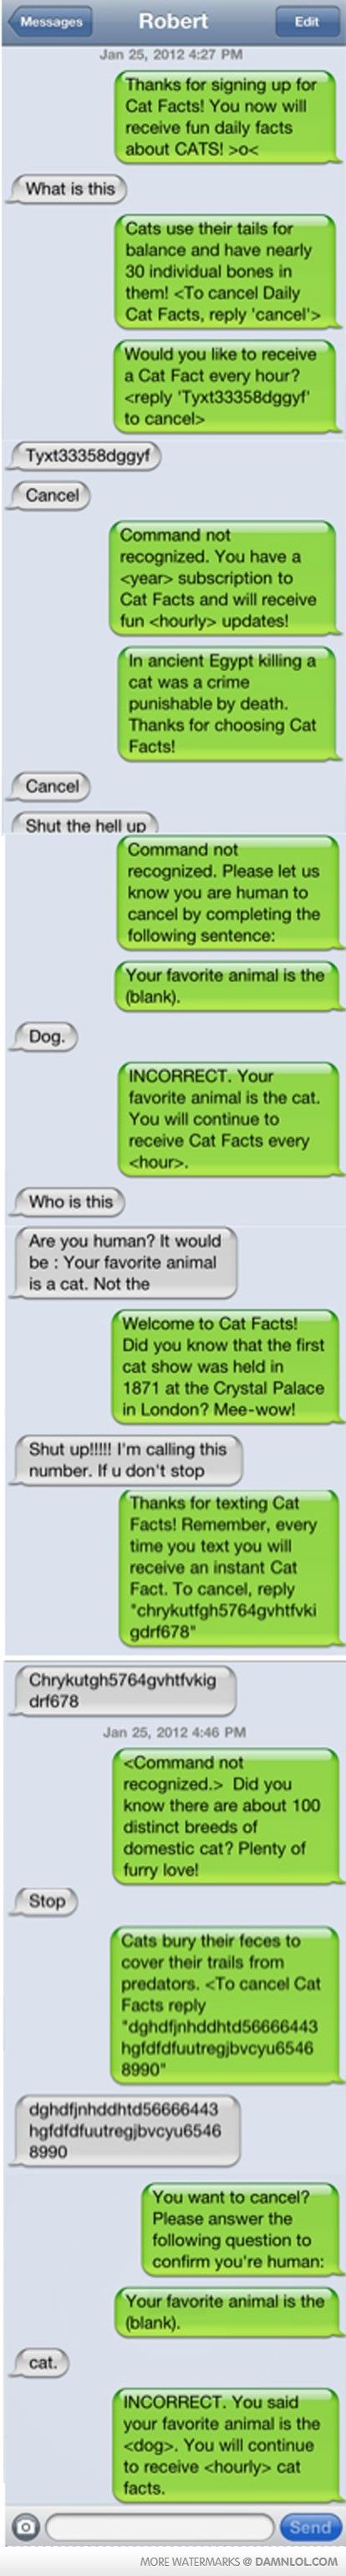 Catfacts